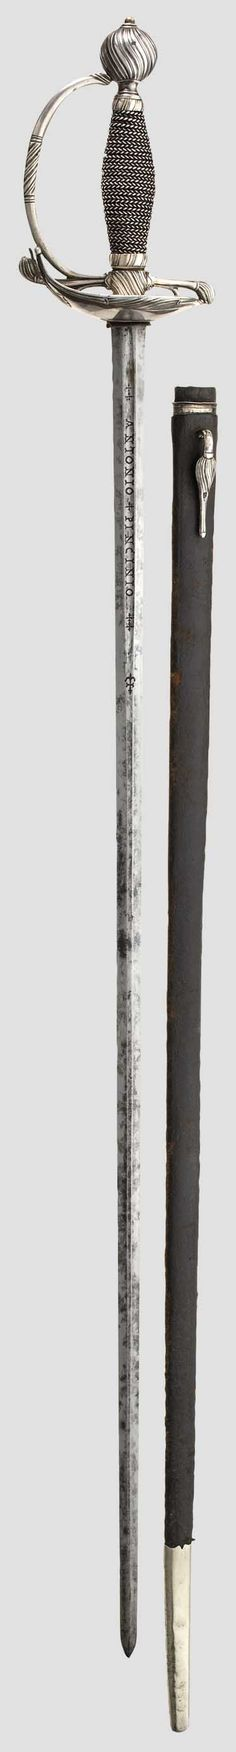 "A North European silver small-sword with scabbard, 2nd half of the 18th century Thrusting blade of flattened hexagonal section, with short fullers on both sides and bearing the inscription ""ANTONIO PINCINIO"". Heavy silver hilt decorated in spiral relief with a guard plate turned up on one side (visible soldering on the quillon). Grip wrapped with corded silver wire. Leather-covered wooden scabbard with stamped locket and (replacement) chape, both fashioned in silver. Length 101 cm."